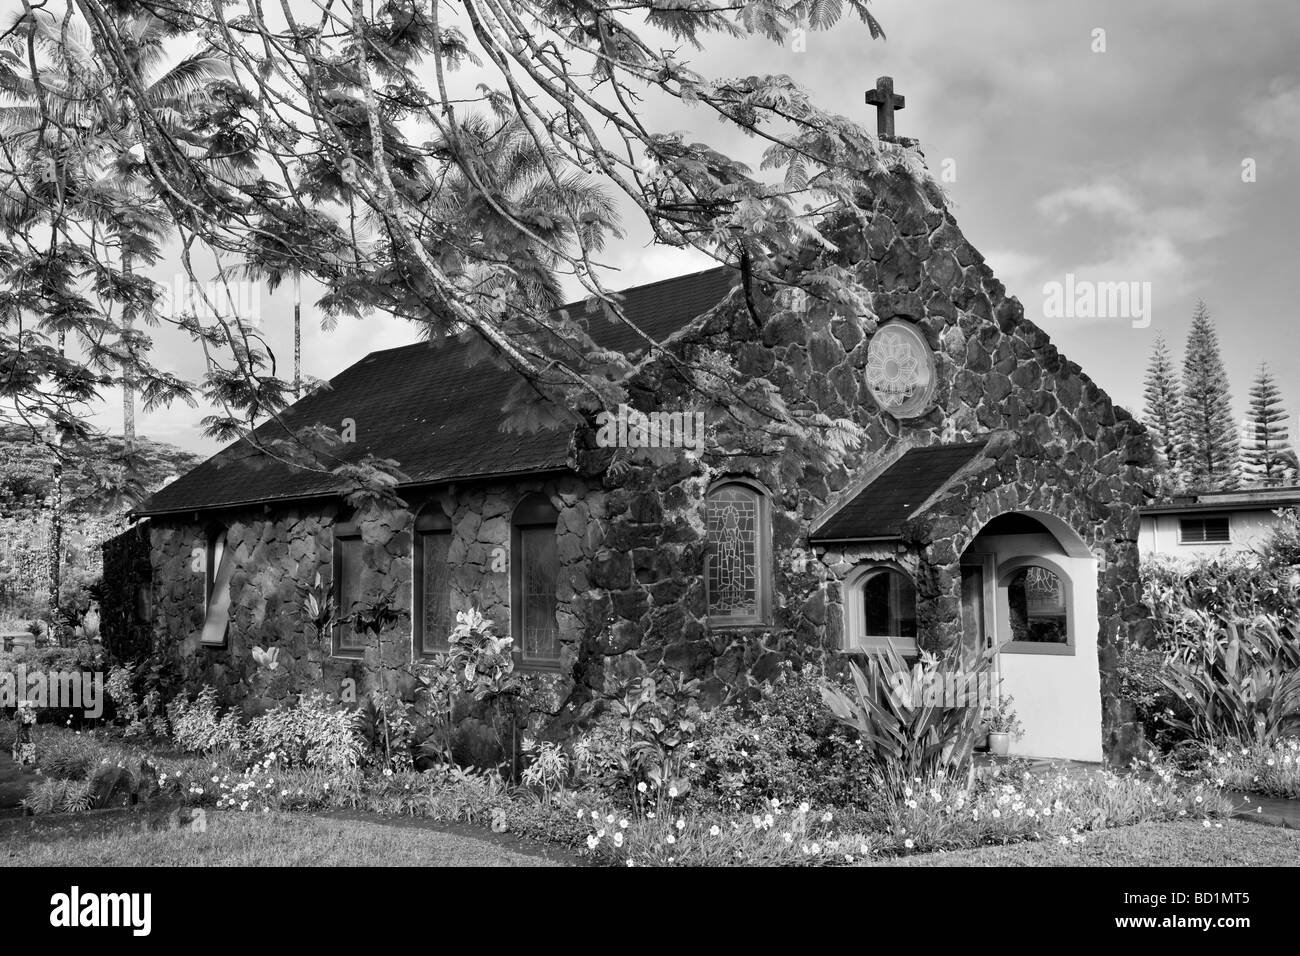 Christ Memorial Episcopal Church Kauai Hawaii - Stock Image